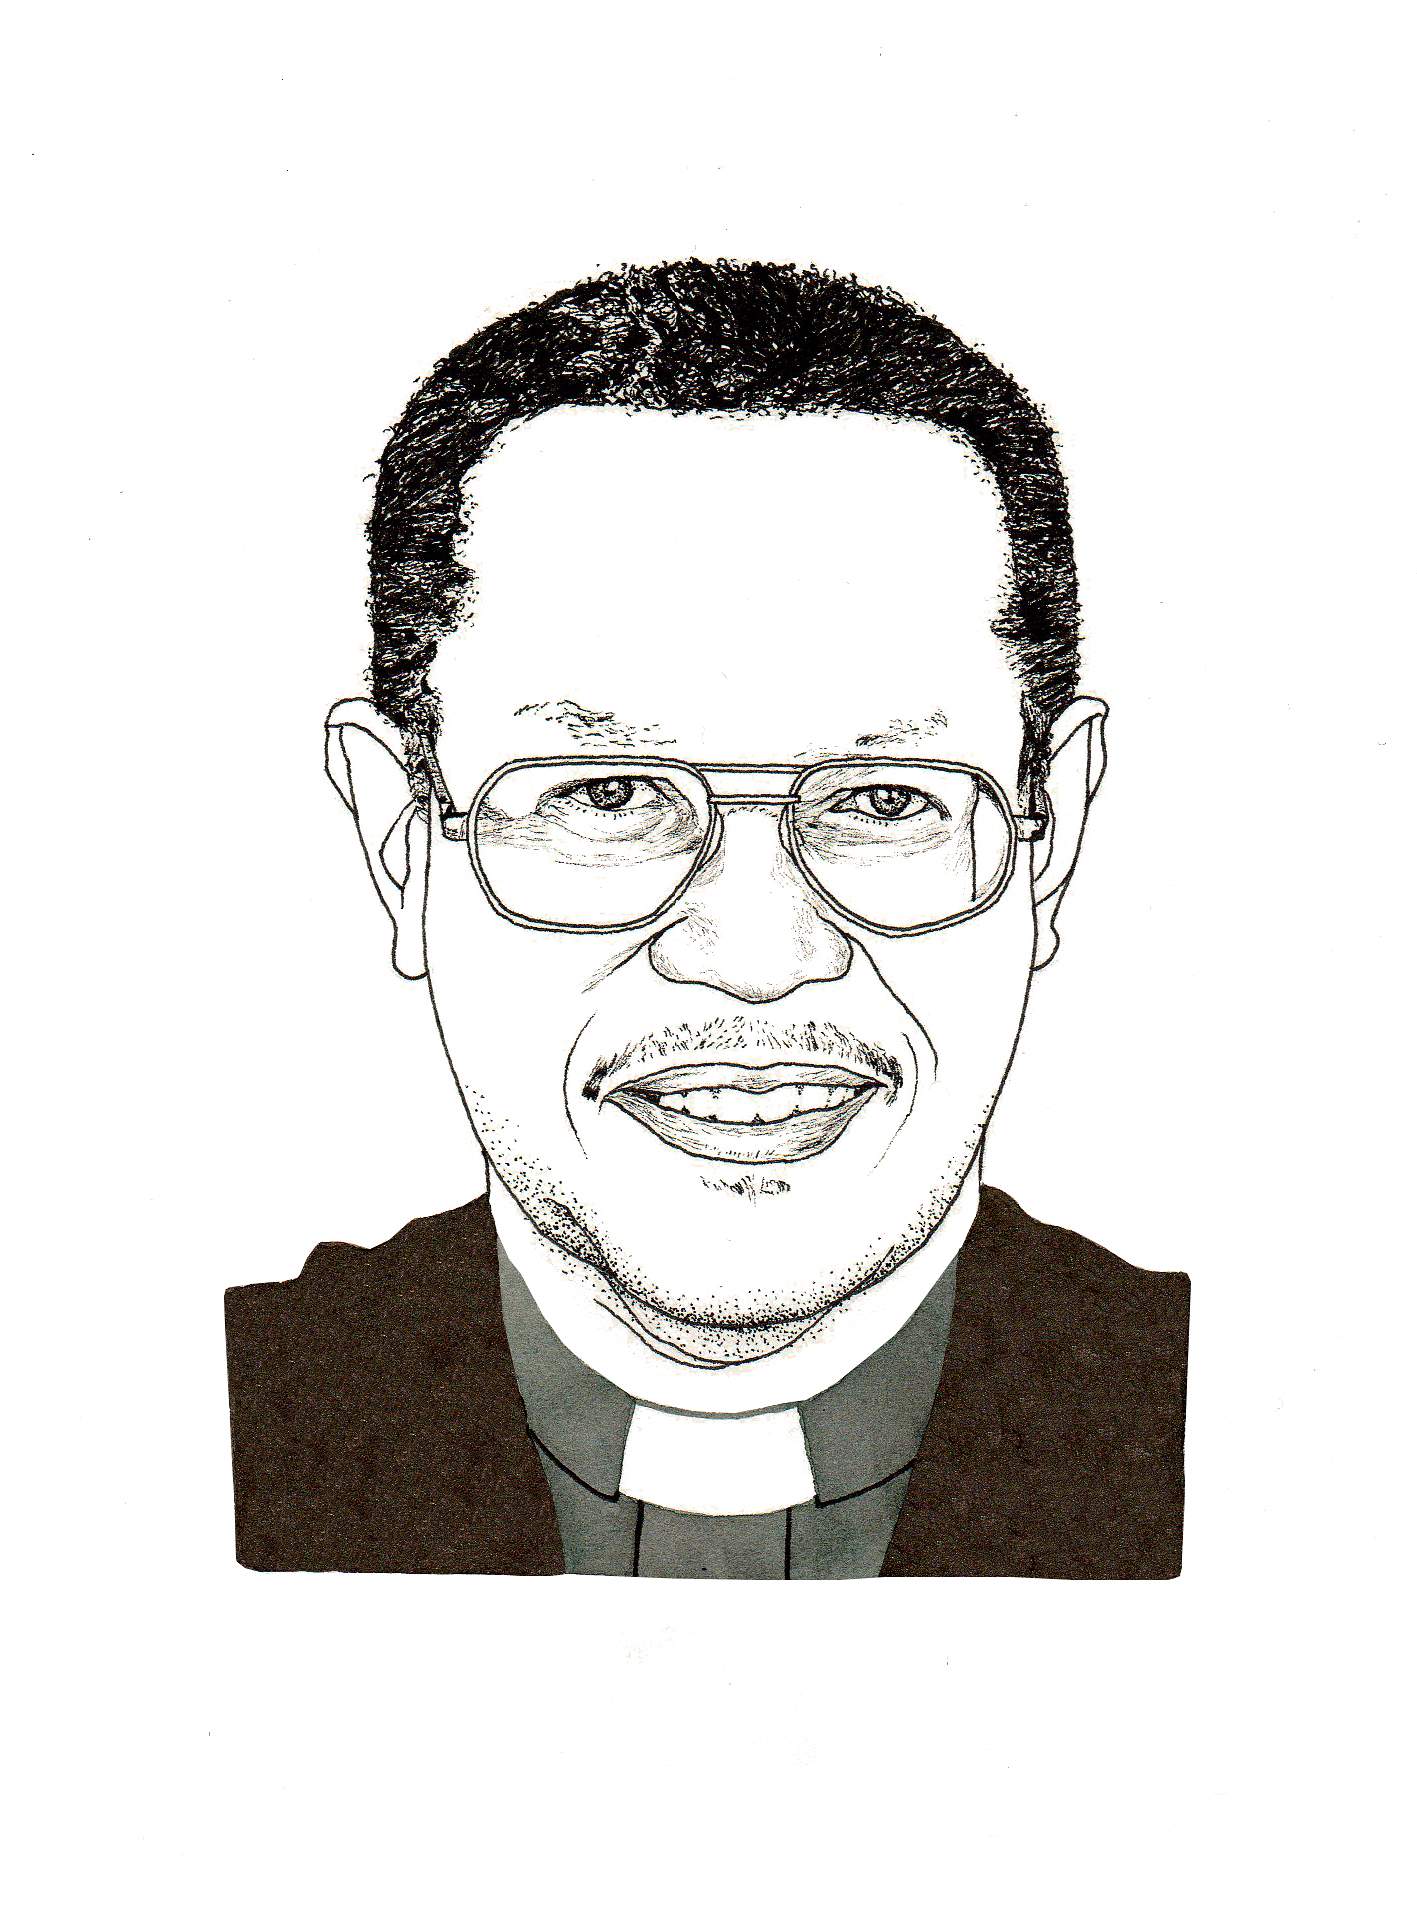 Rev. Lesley George Anderson (Illustration by Adam Cruft)